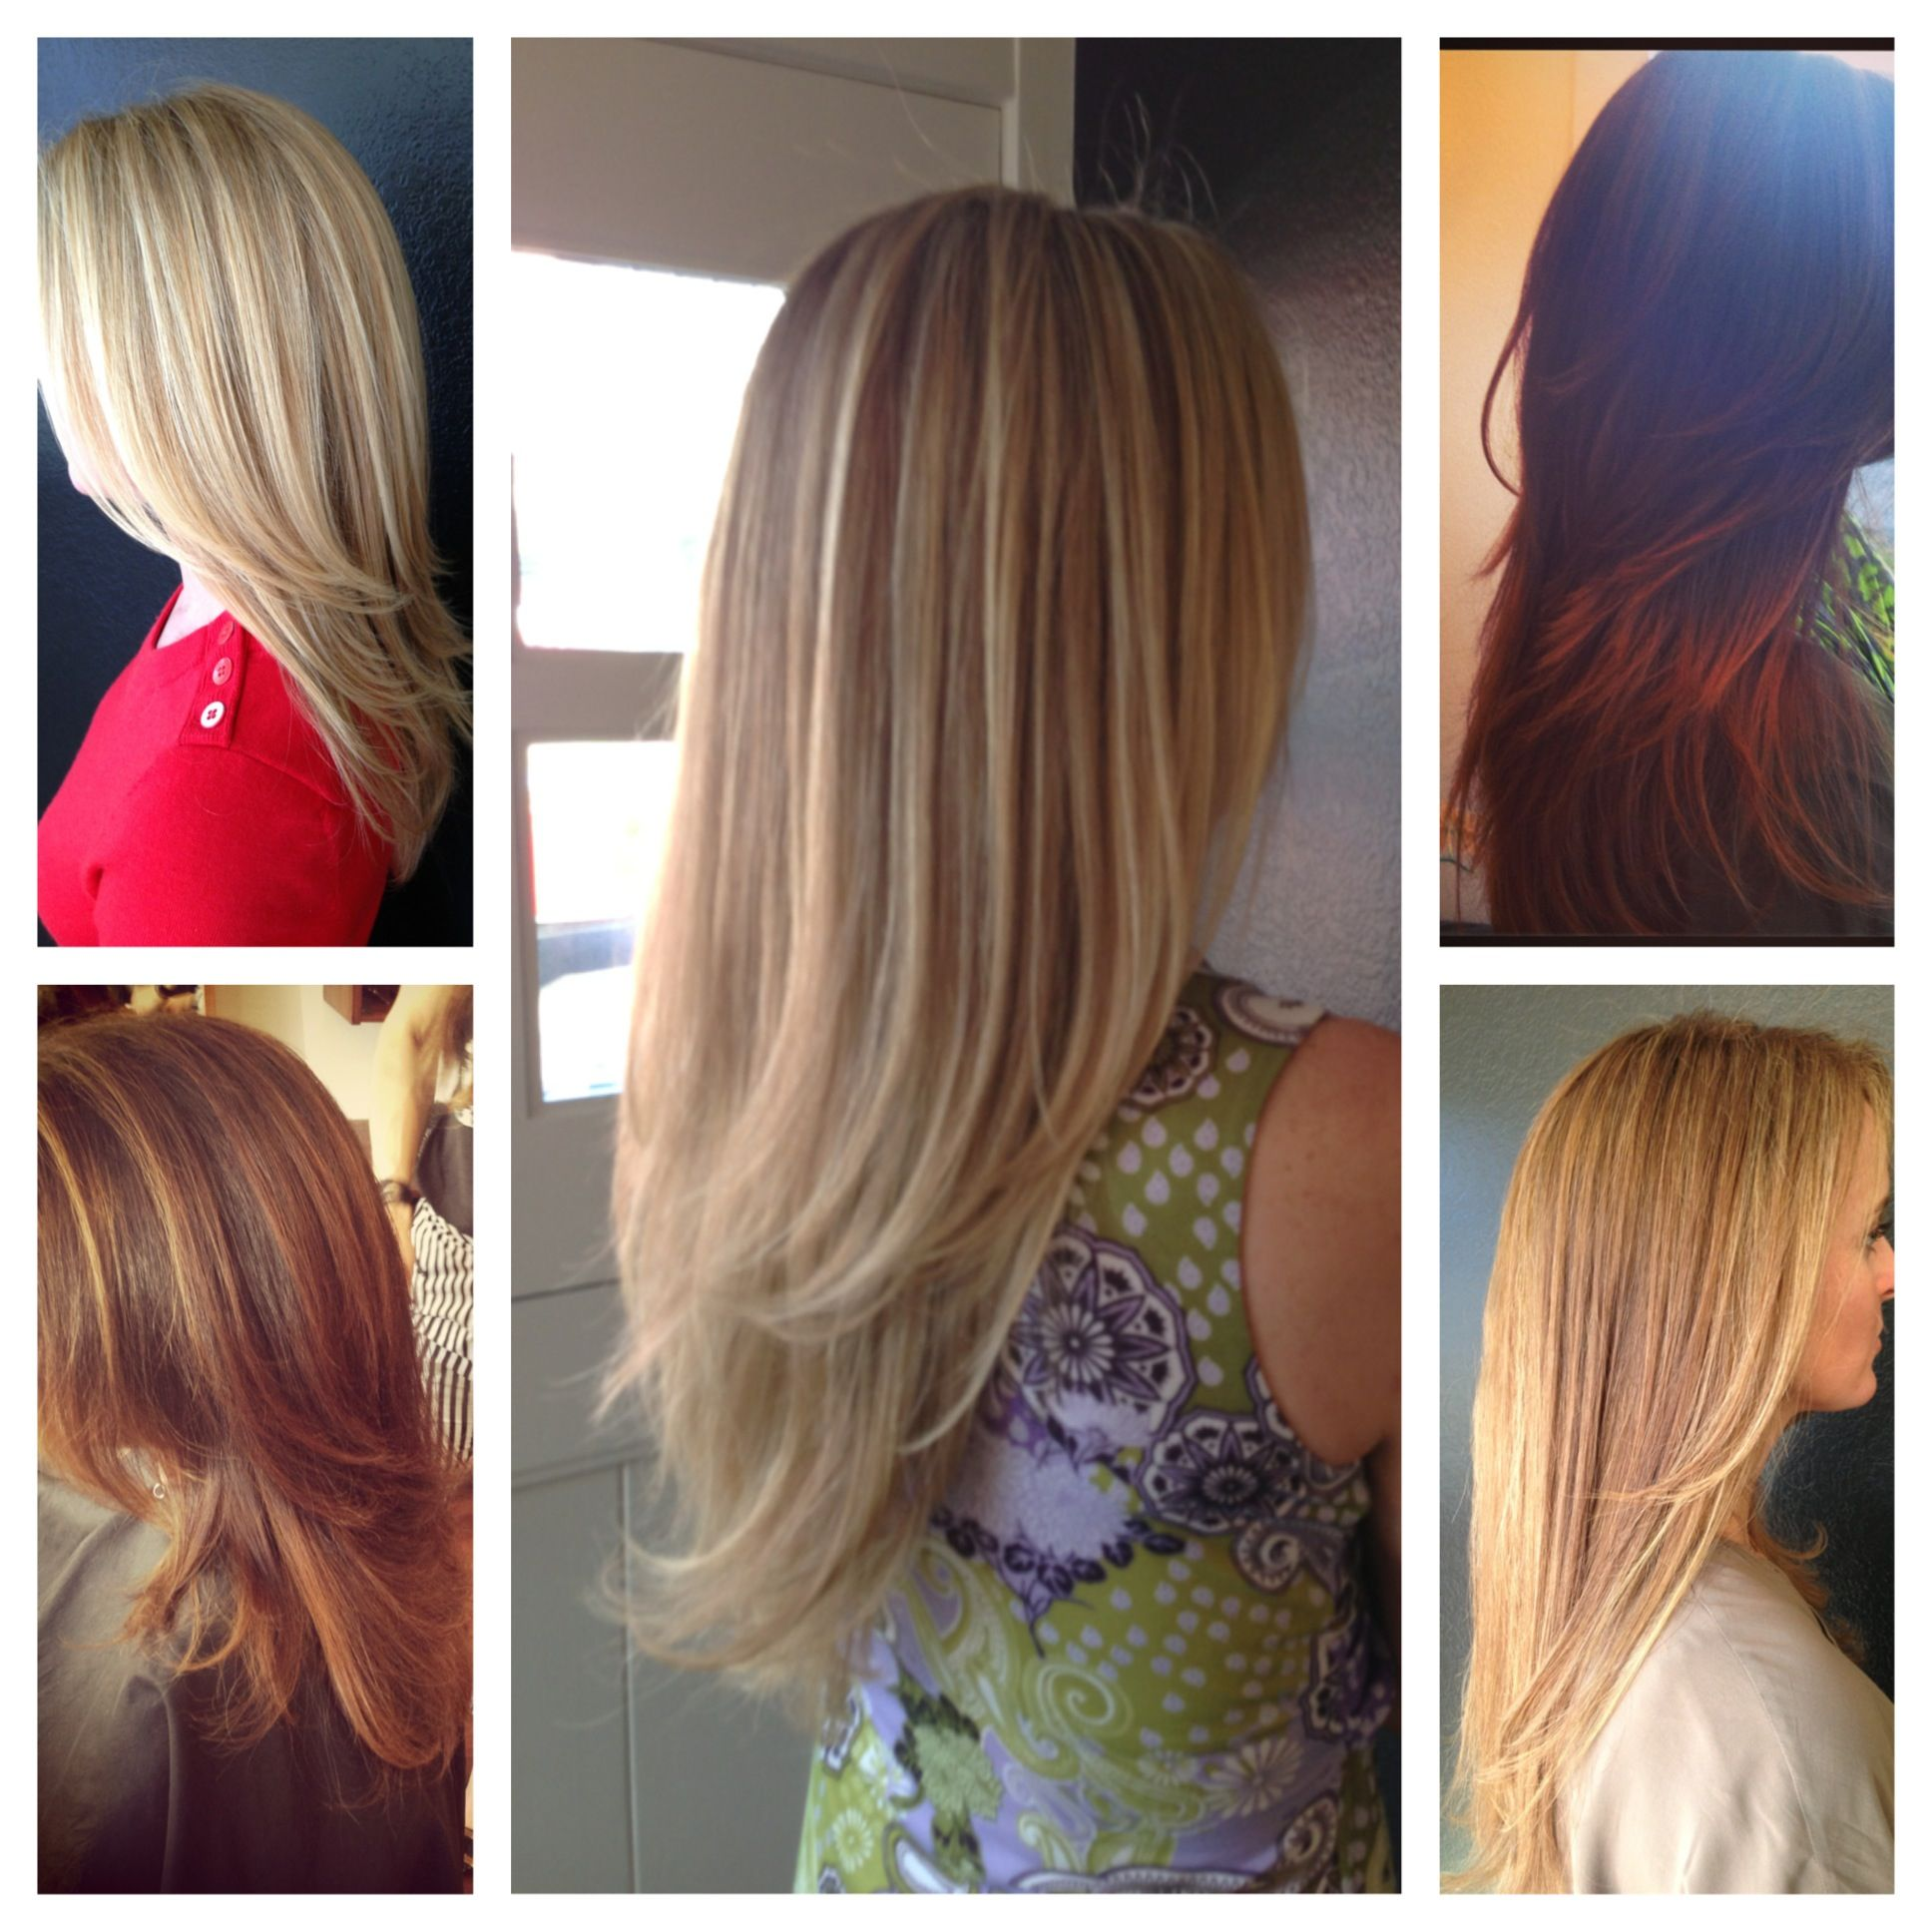 Long hair- Great pic to show clients the different types ...